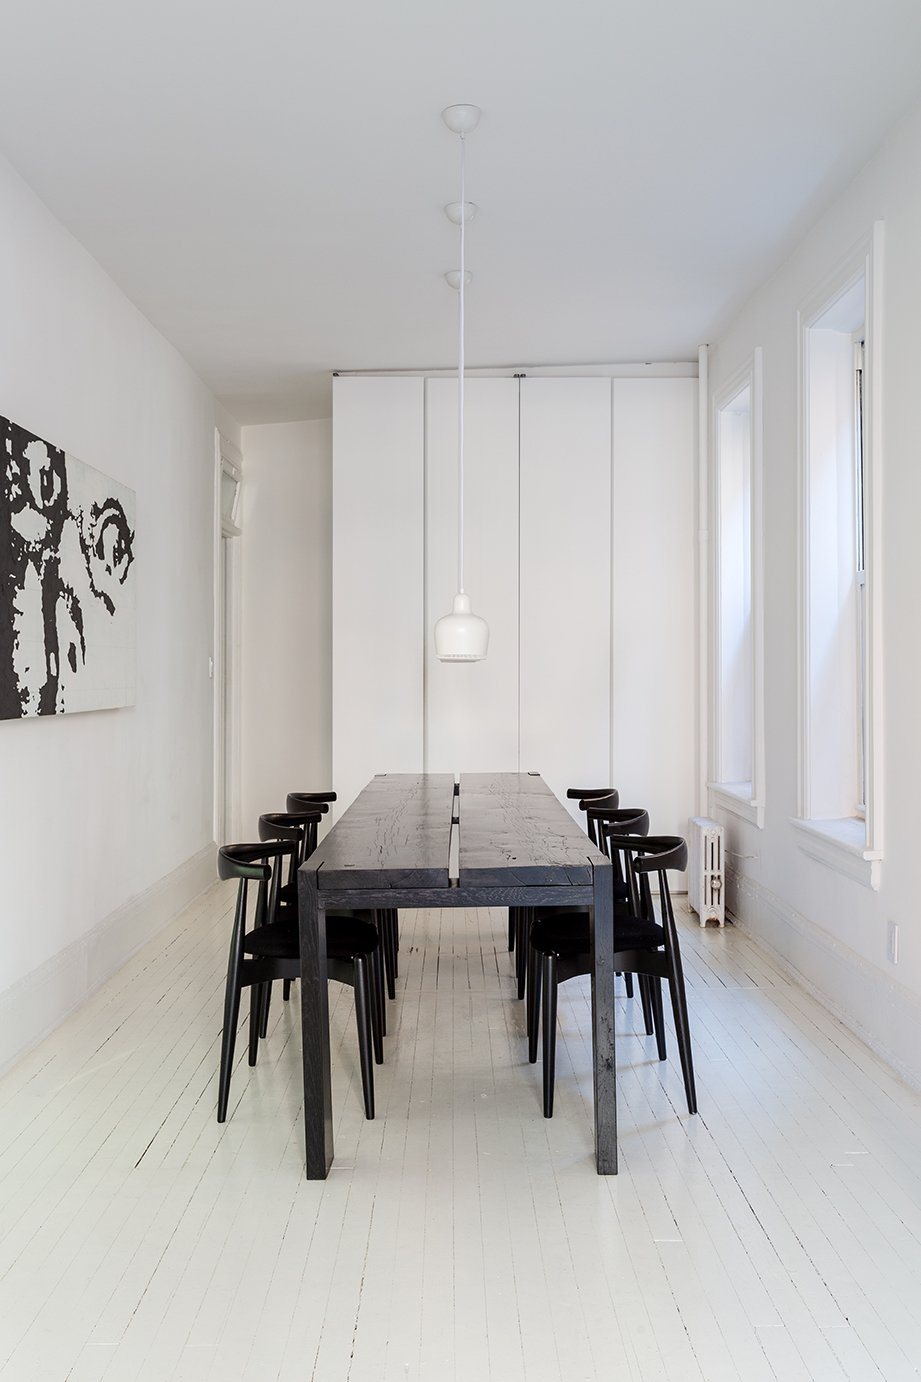 Dining Room, Chair, Table, Pendant Lighting, and Painted Wood Floor Elbow chairs by Hans J. Wegner  for Carl Hansen & Søn surround  a table of the couple's own design. By removing walls in this space, extra storage was possible. The trio of A330S pendants are by Alvar Aalto for Artek. The painting, The Look, is by Ed Parker. - Brooklyn, New York Dwell Magazine : July / August 2017  Photos from A Pair of Designers Renovate Their Brooklyn Brownstone With a Bright Monochromatic Palette